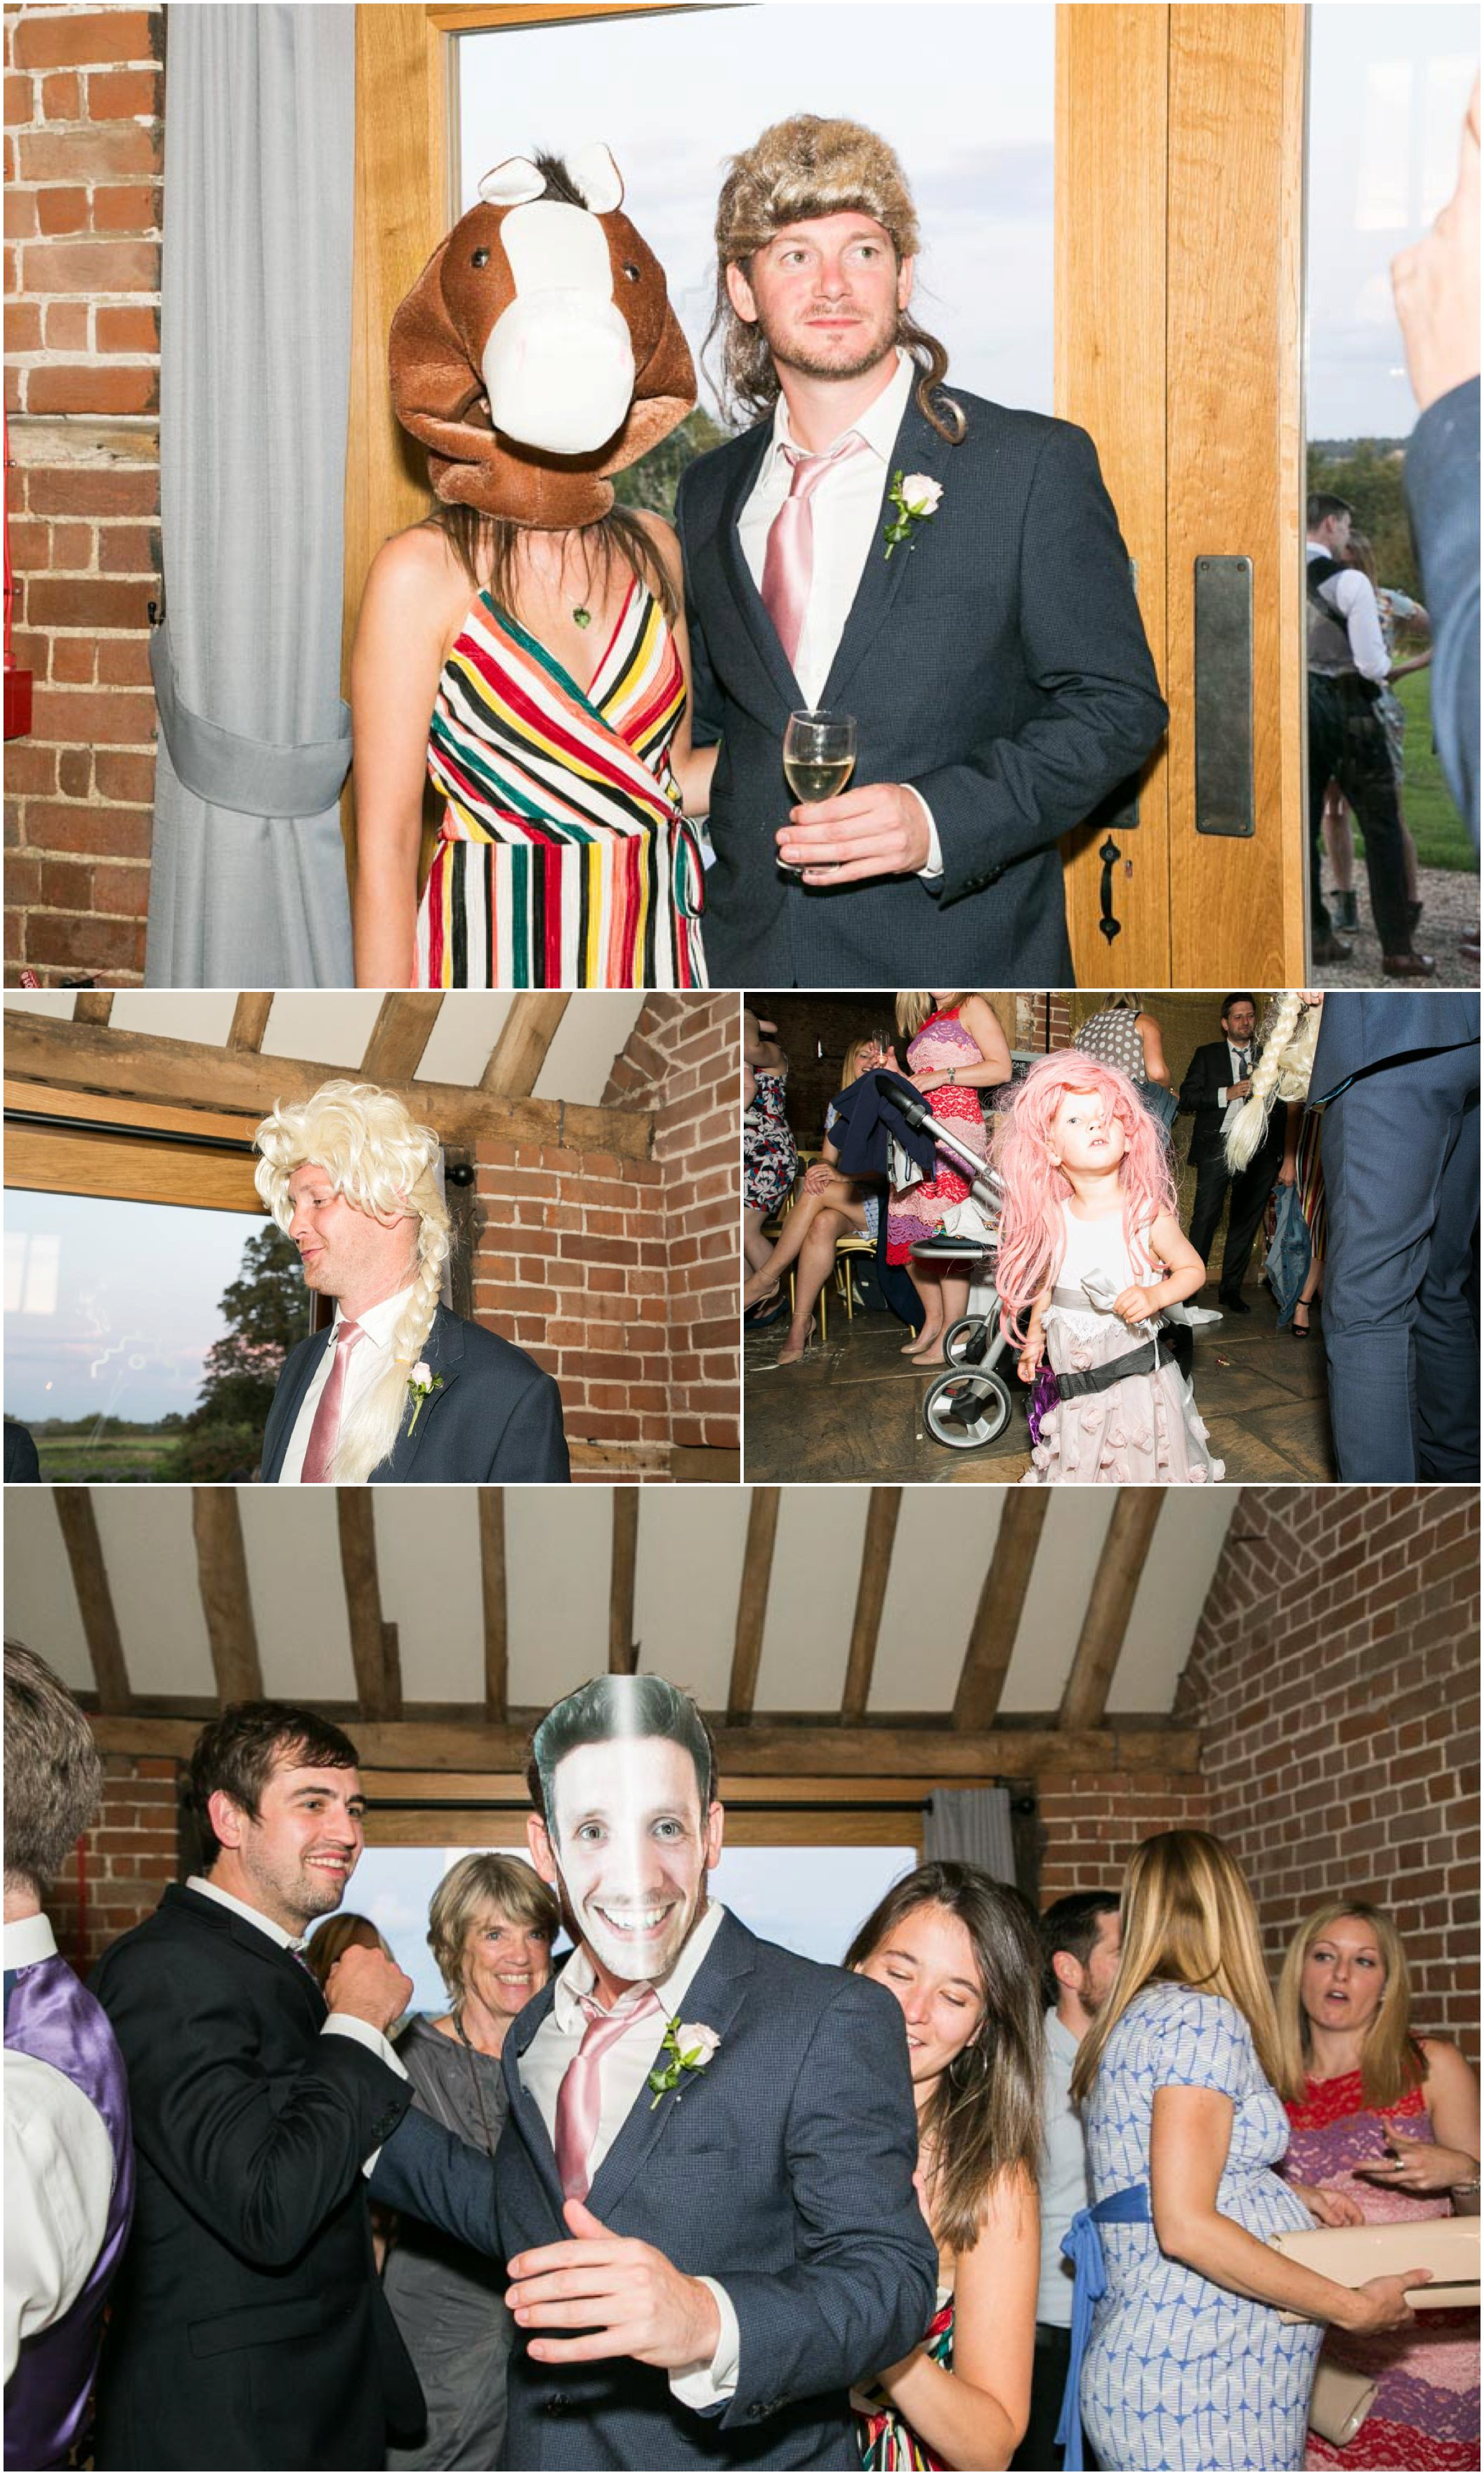 guests having fun with wigs and masks at barn wedding reception